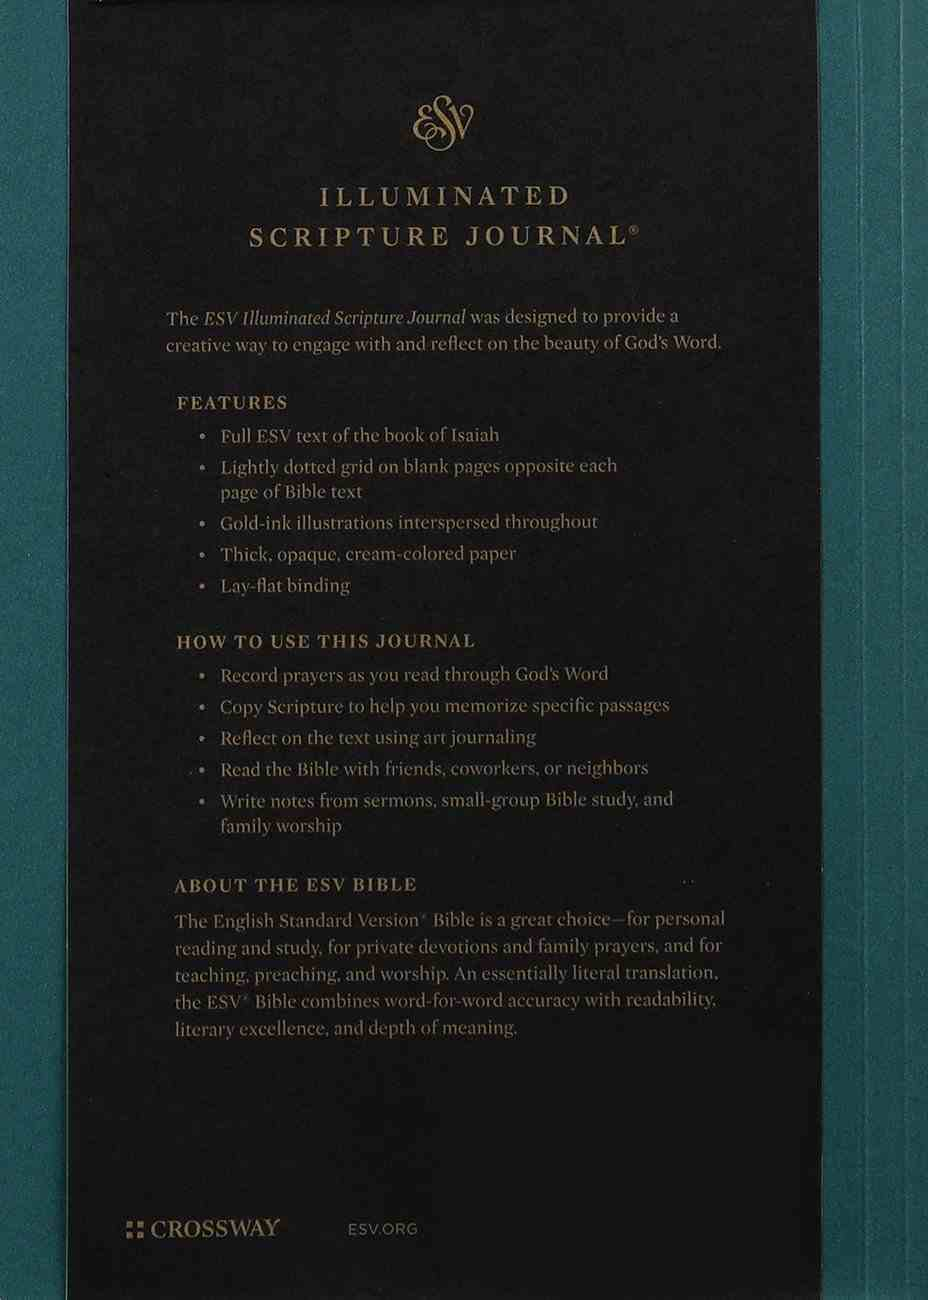 ESV Illuminated Scripture Journal Isaiah (Black Letter Edition) Paperback